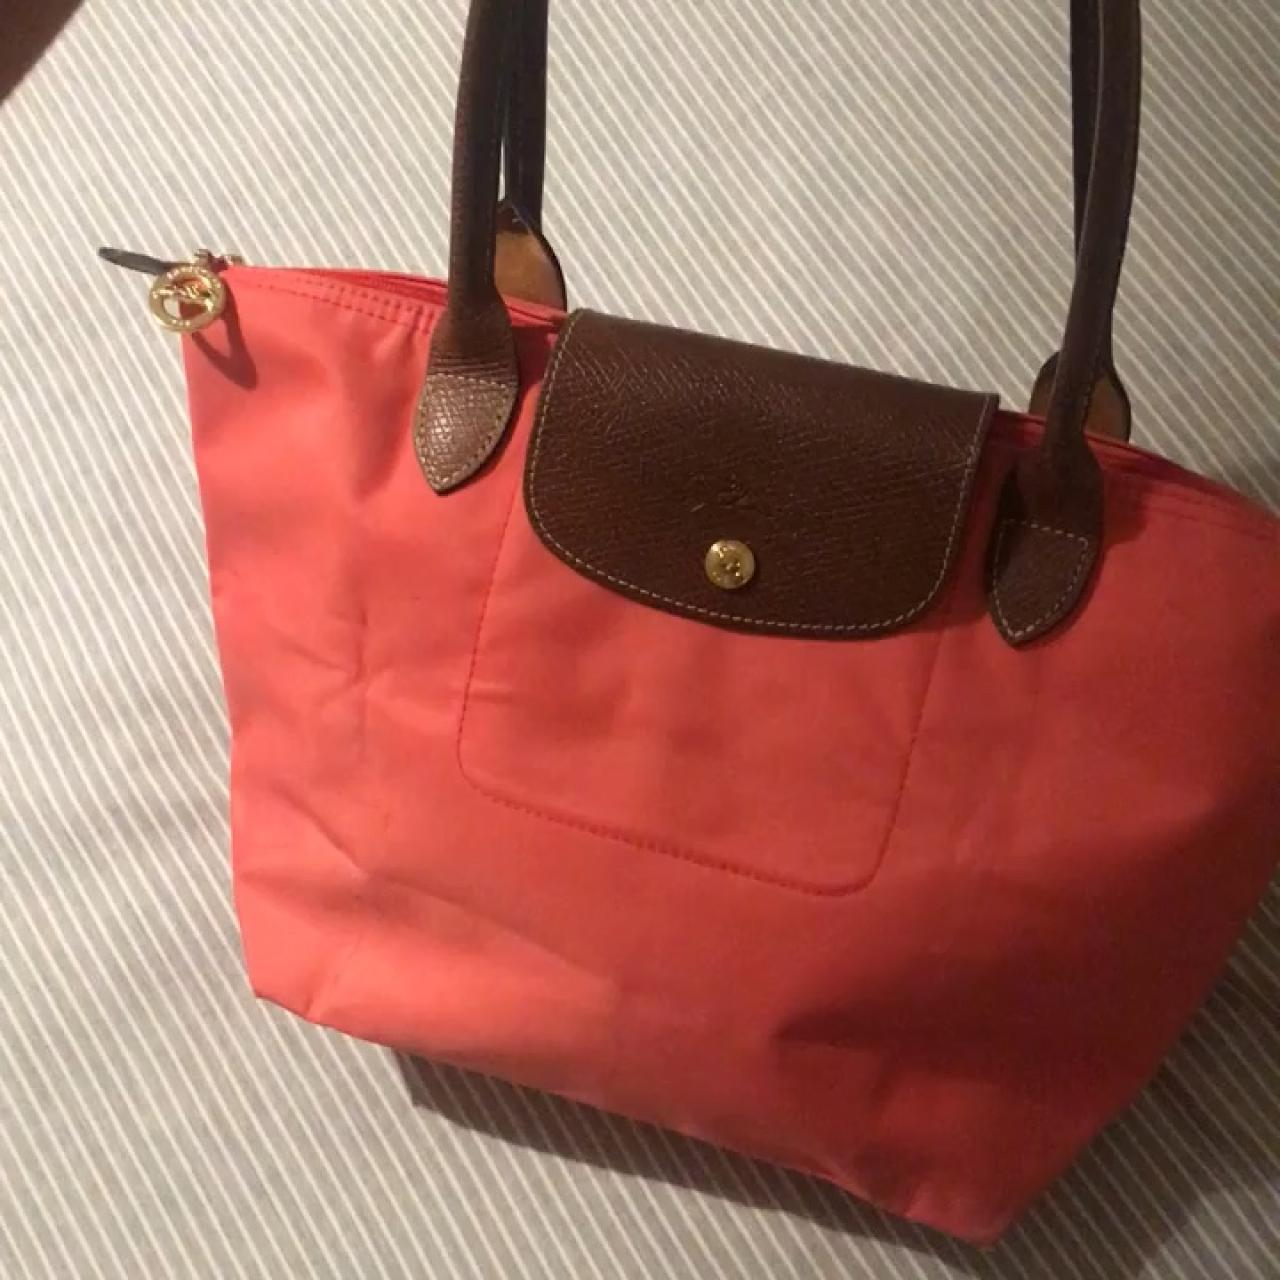 cc8496258320 Longchamp le pliage bag in coral. Worn but in good condition - Depop